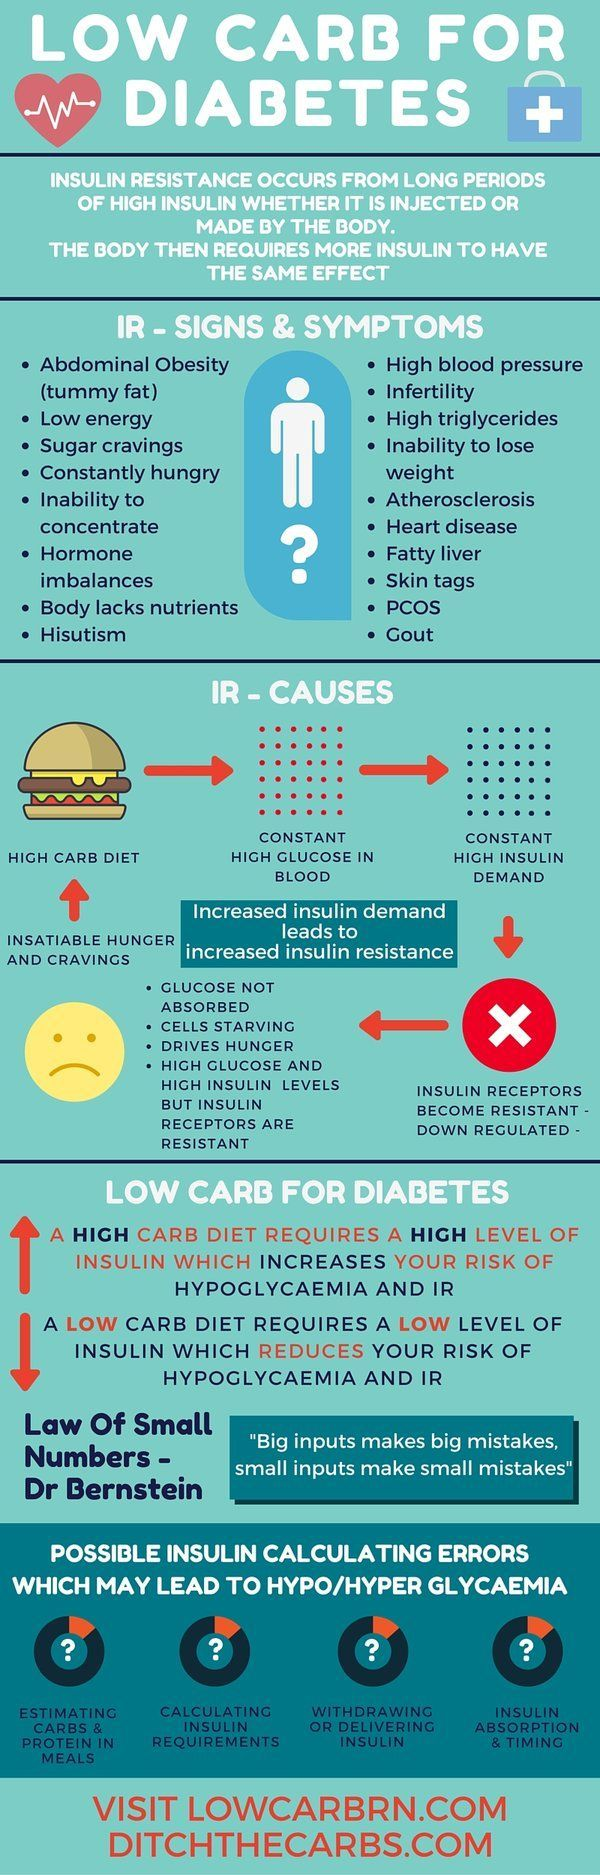 Low carb for diabetes - Read the full article which explains insulin resistance and how low carb can help all forms of diabetes. Gain control of your blood glucose levels. | ditchthecarbs.com